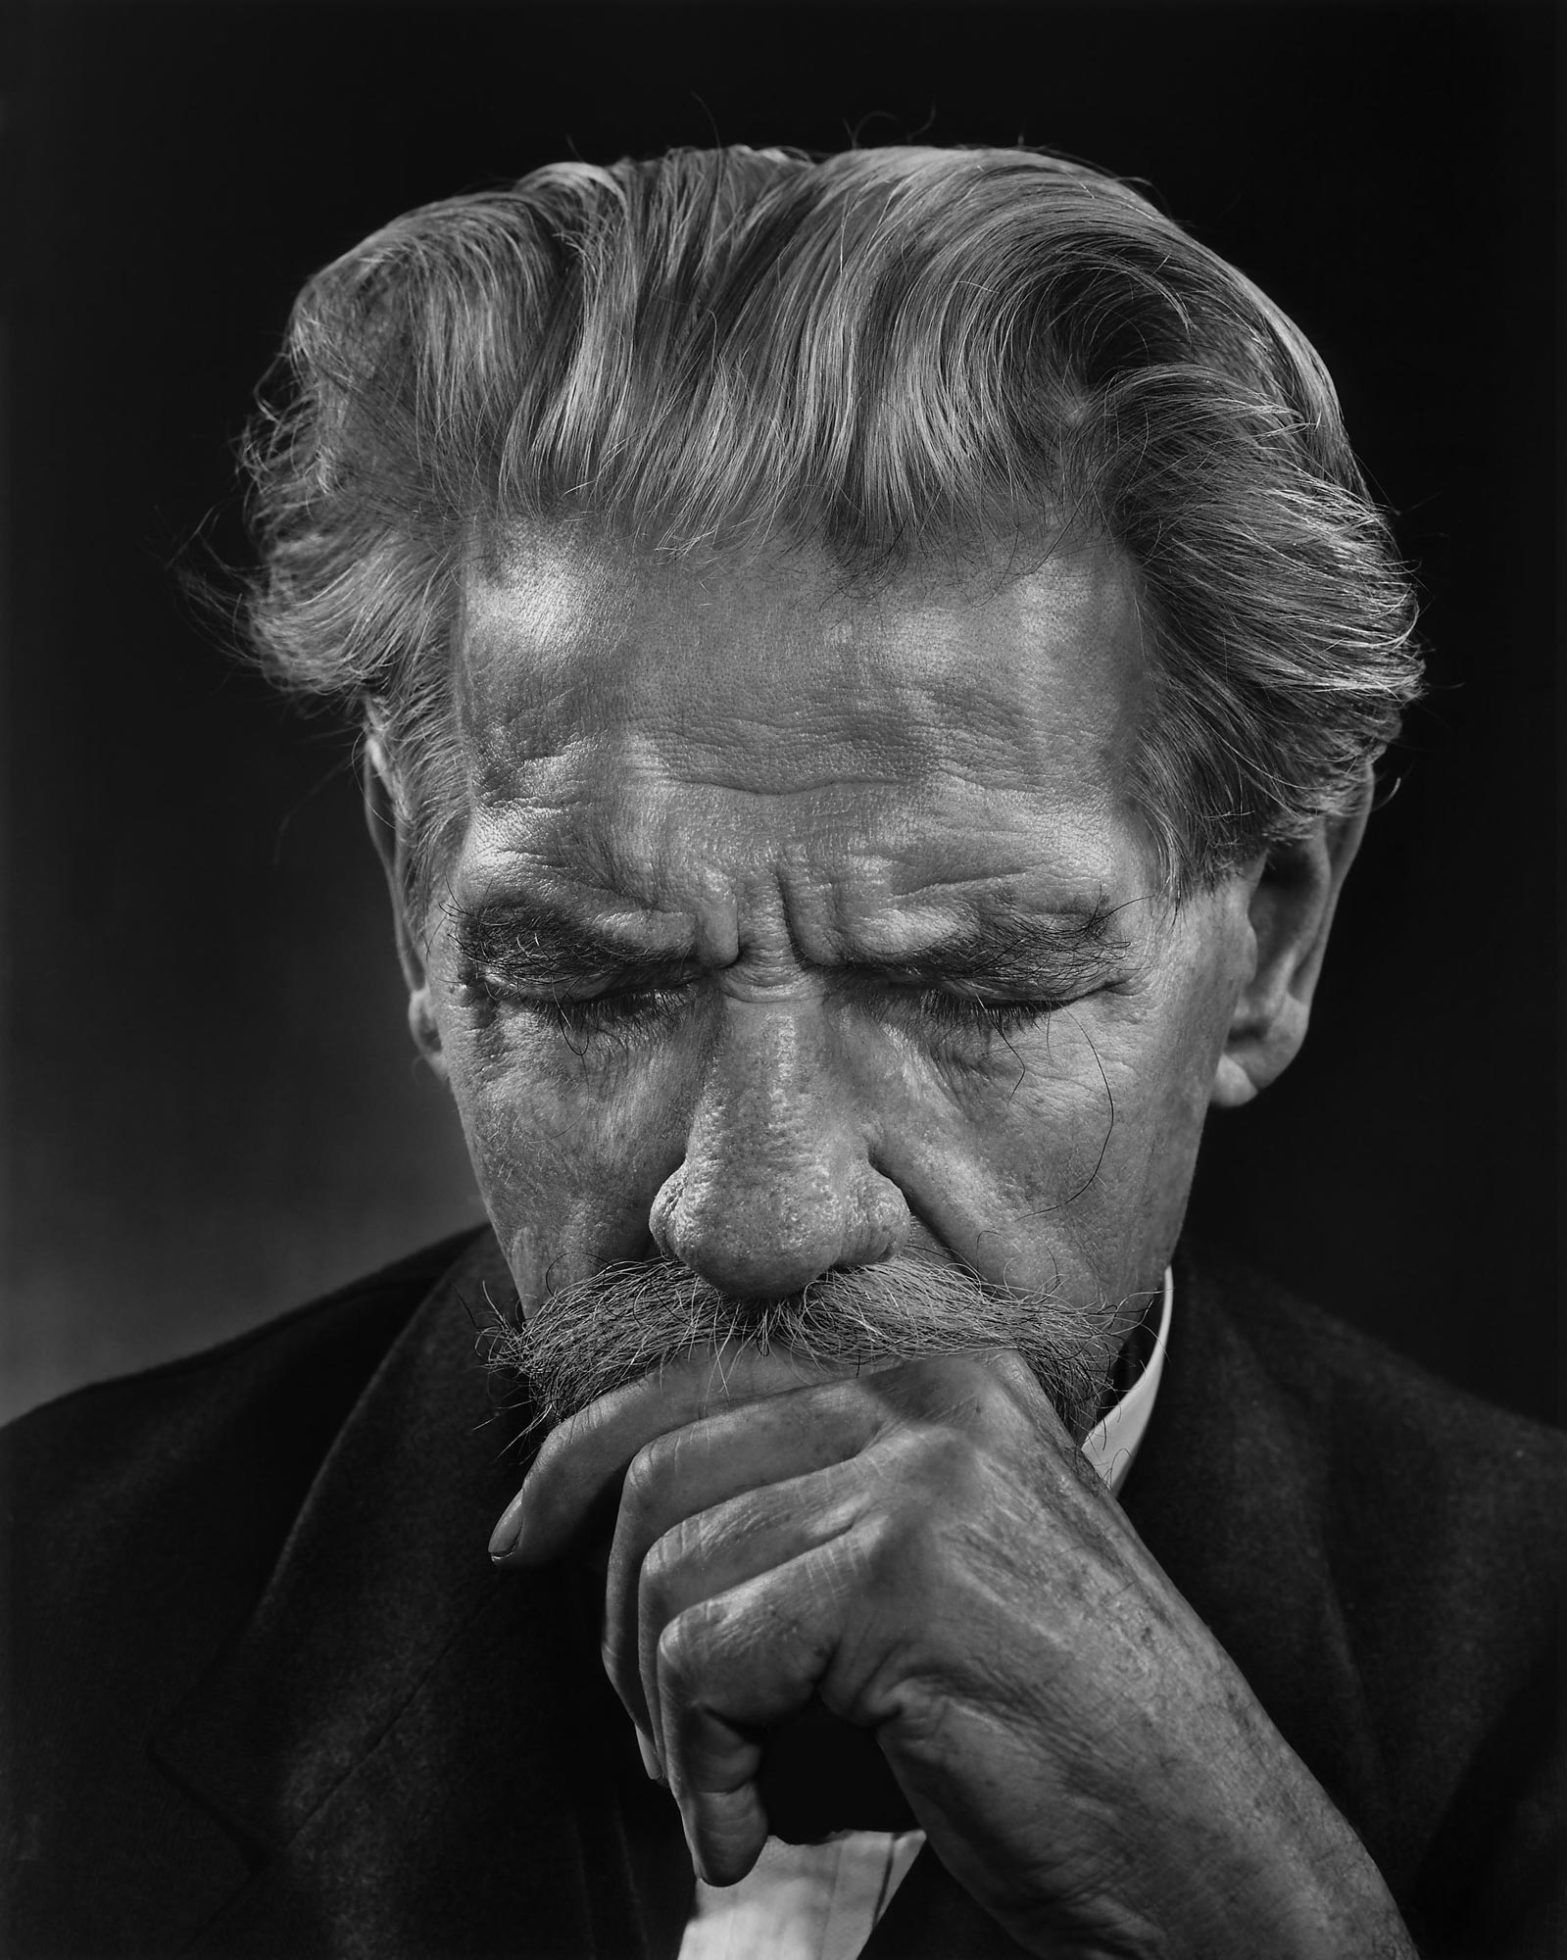 19 Jun 1954 Dr Albert Schweitzer O Nobel Peace Prize 1952 By Yousuf Karsh Which I Asked This Humanitarian Winner